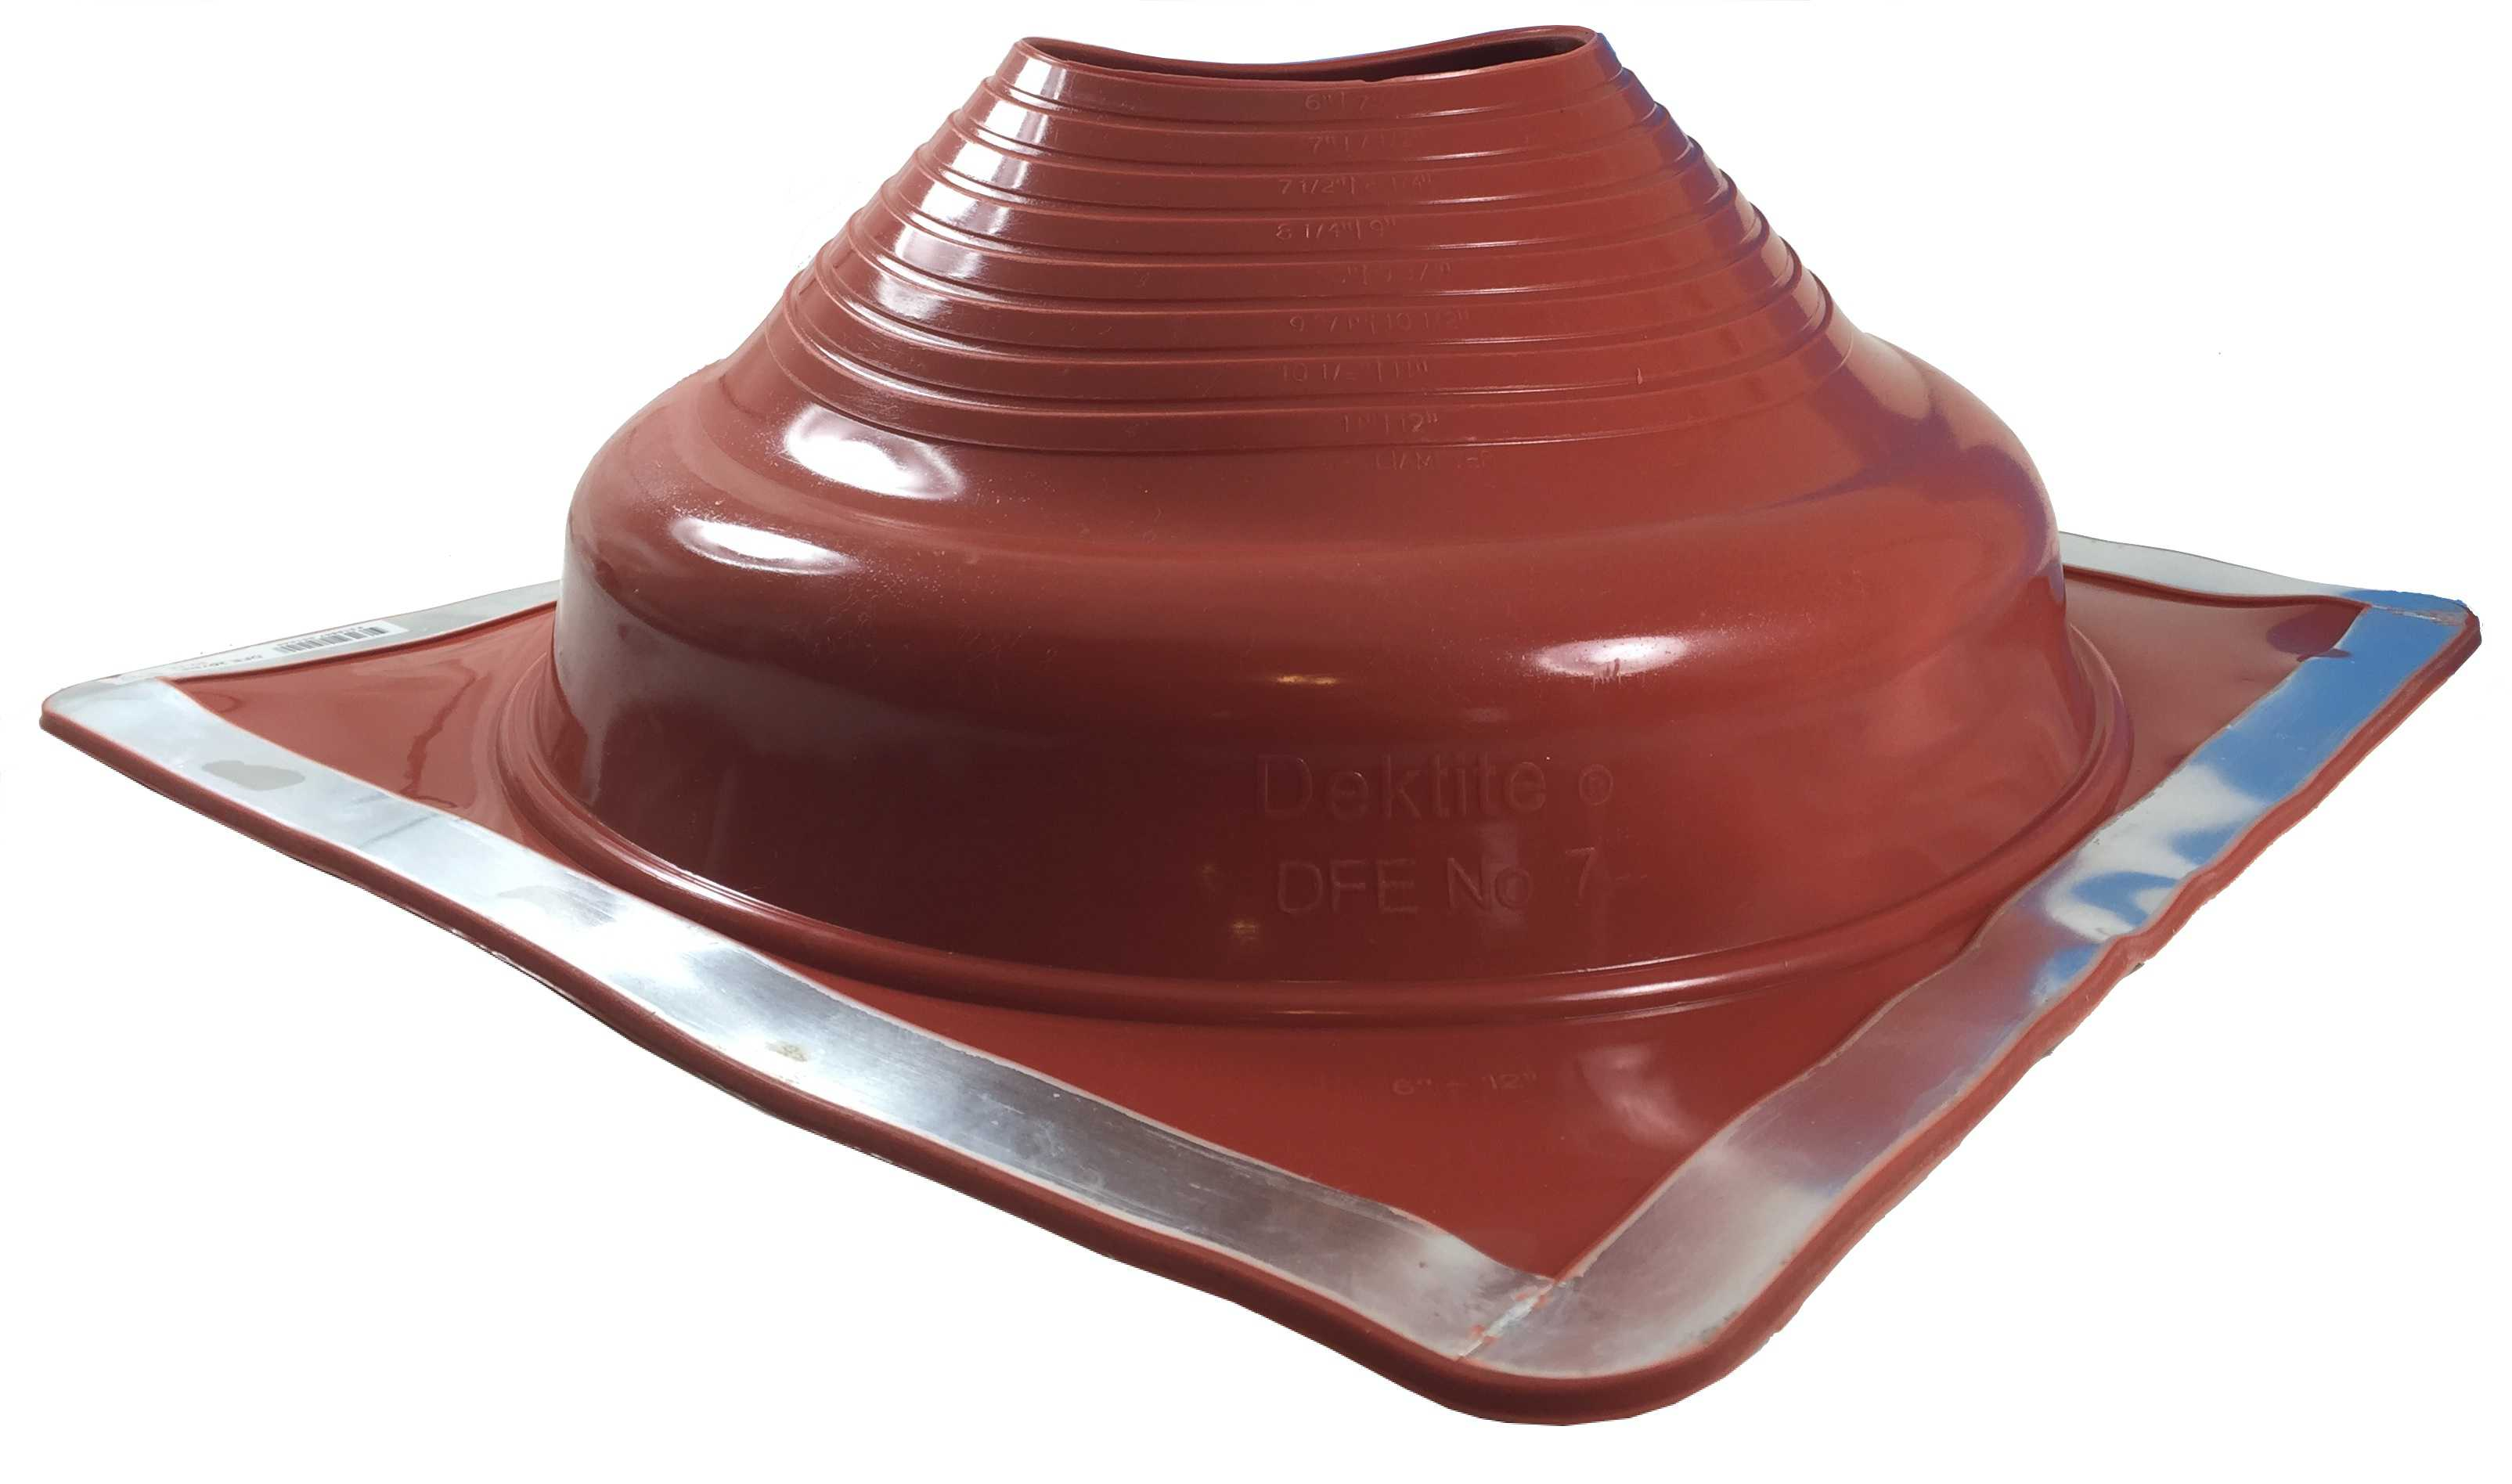 DEKTITE ROUND BASE PIPE FLASHING BOOT: #7 RED High Temp Silicone Square Base Flexible Pipe Flashing Dektite (for OD pipe sizes 6' - 12')~pipe flashing fastens w/roofing screws~Deks Dektite